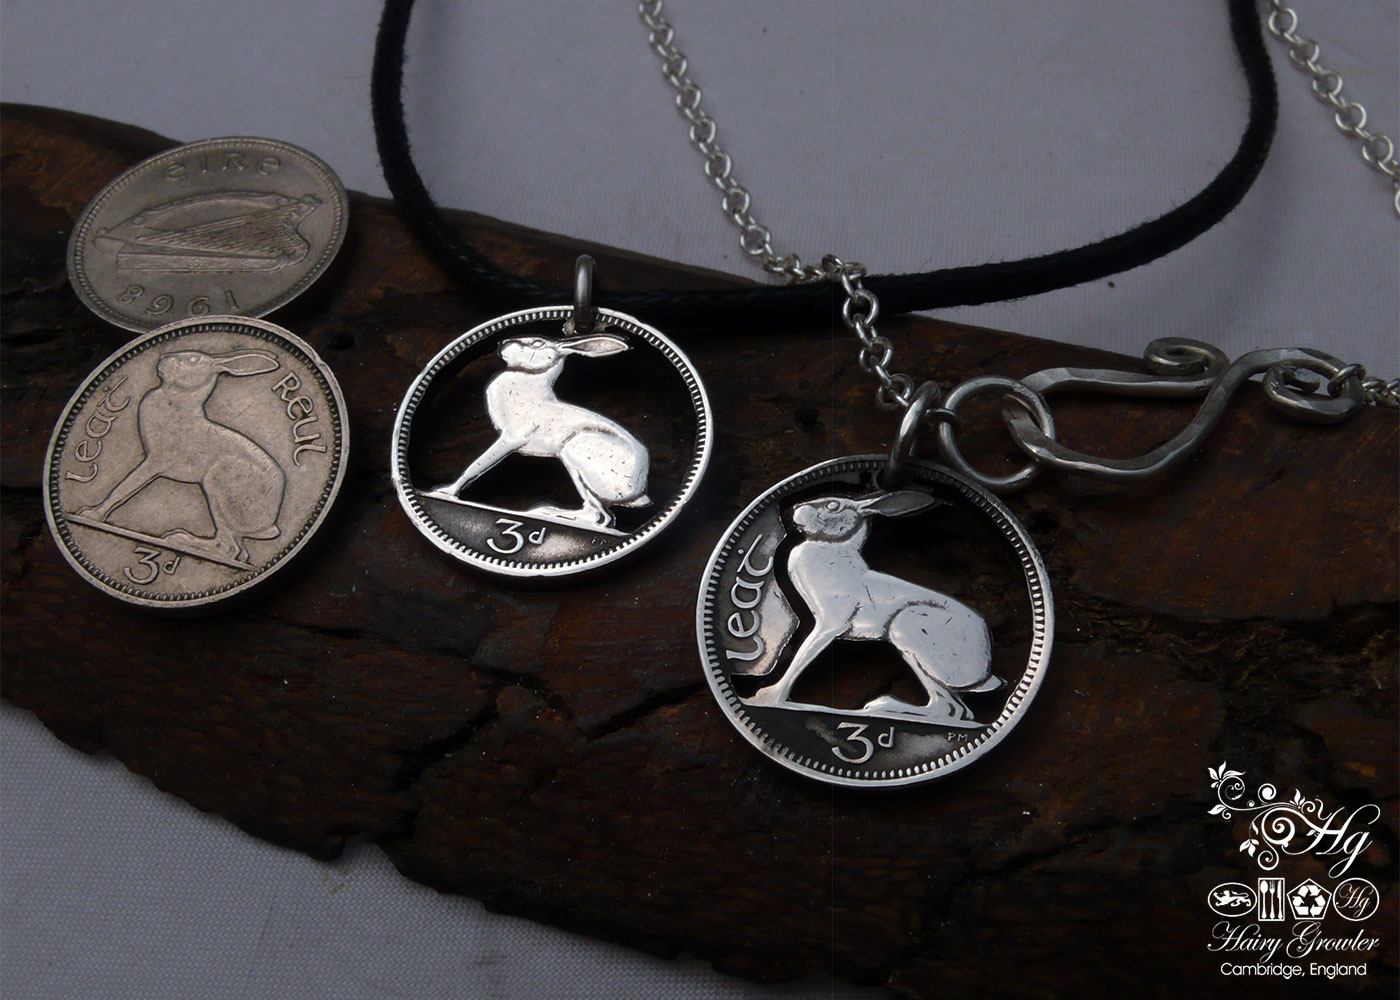 Hand crafted and carved Irish hare threepence coin pendant. Handmade and recycled jewellery